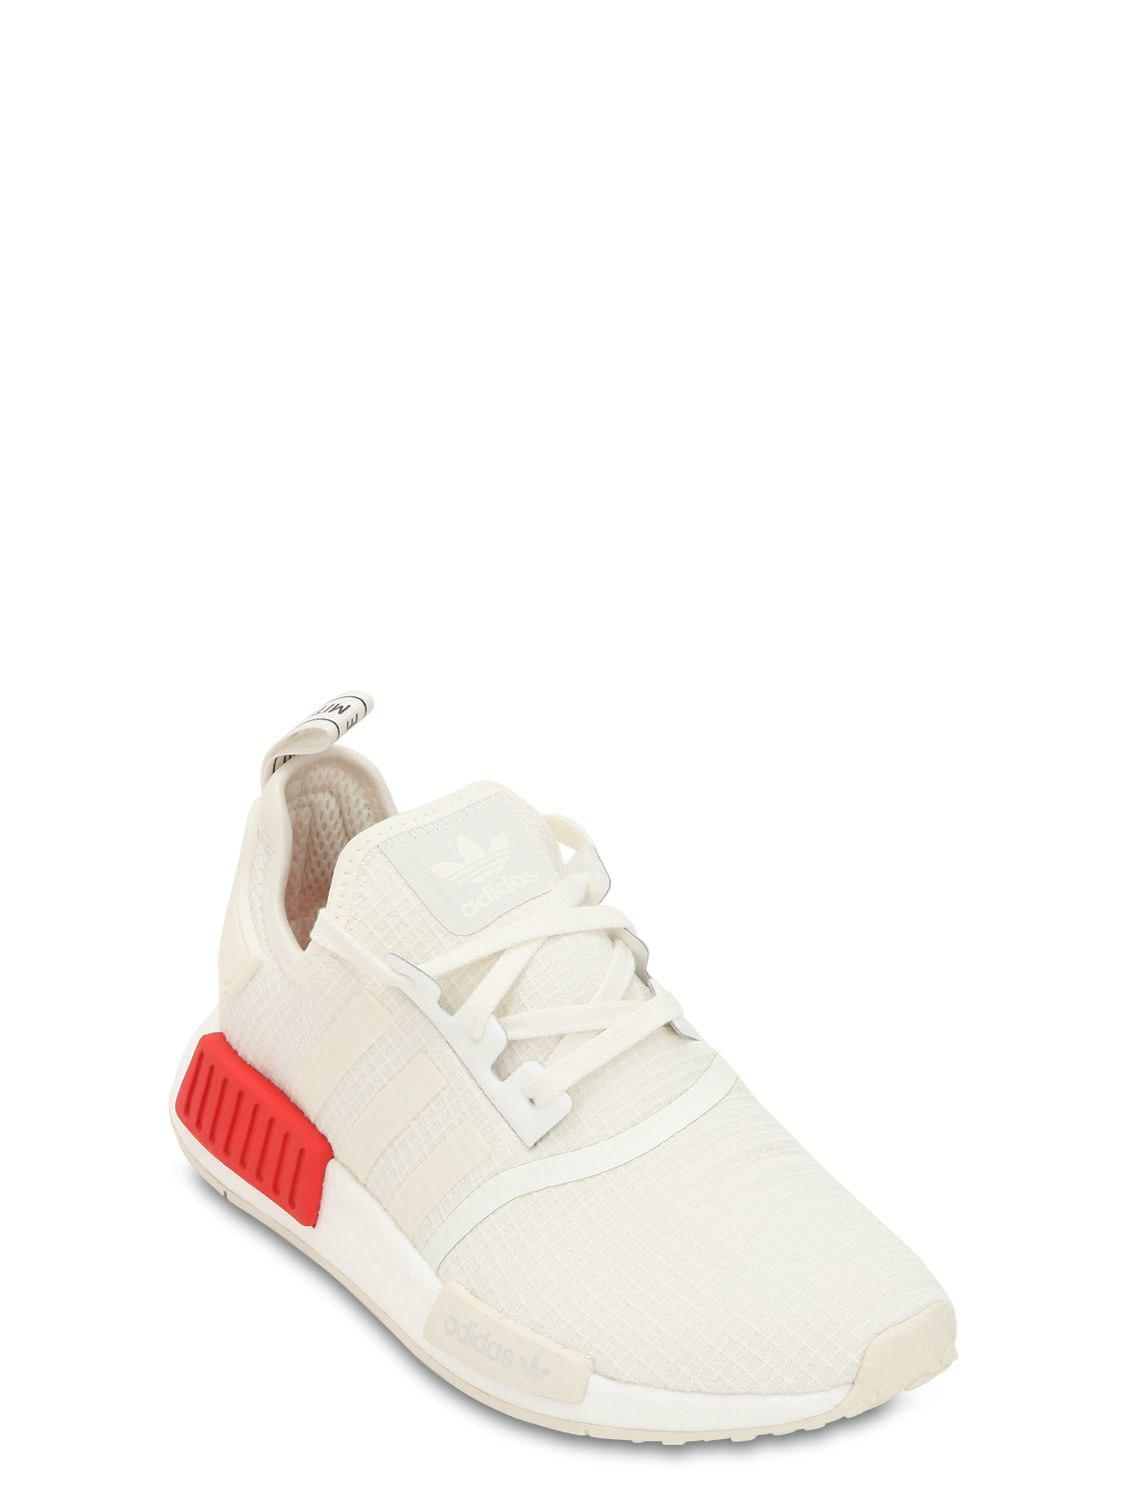 d069406a00ee0 Adidas Originals Nmd R1 Sneakers in White for Men - Lyst